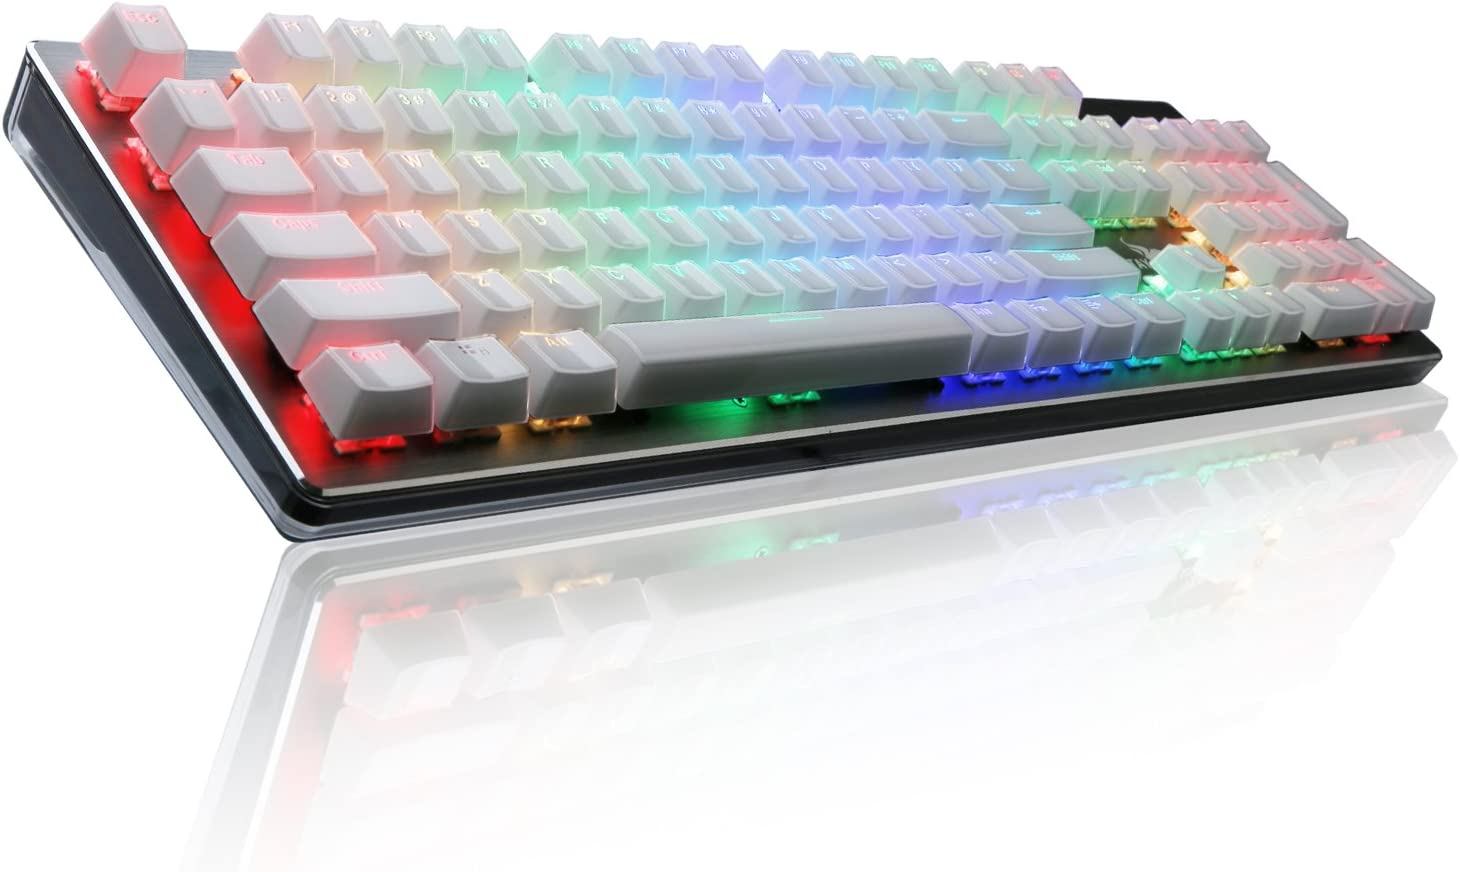 RGB Mechanical Keyboard, Rottay 16.8 Million RGB Backlit Wired Mechanical Gaming Keyboard with Brown Switches 104-Key Anti-ghosting and Fully Programmable for PC&Mac Gamers and Typist